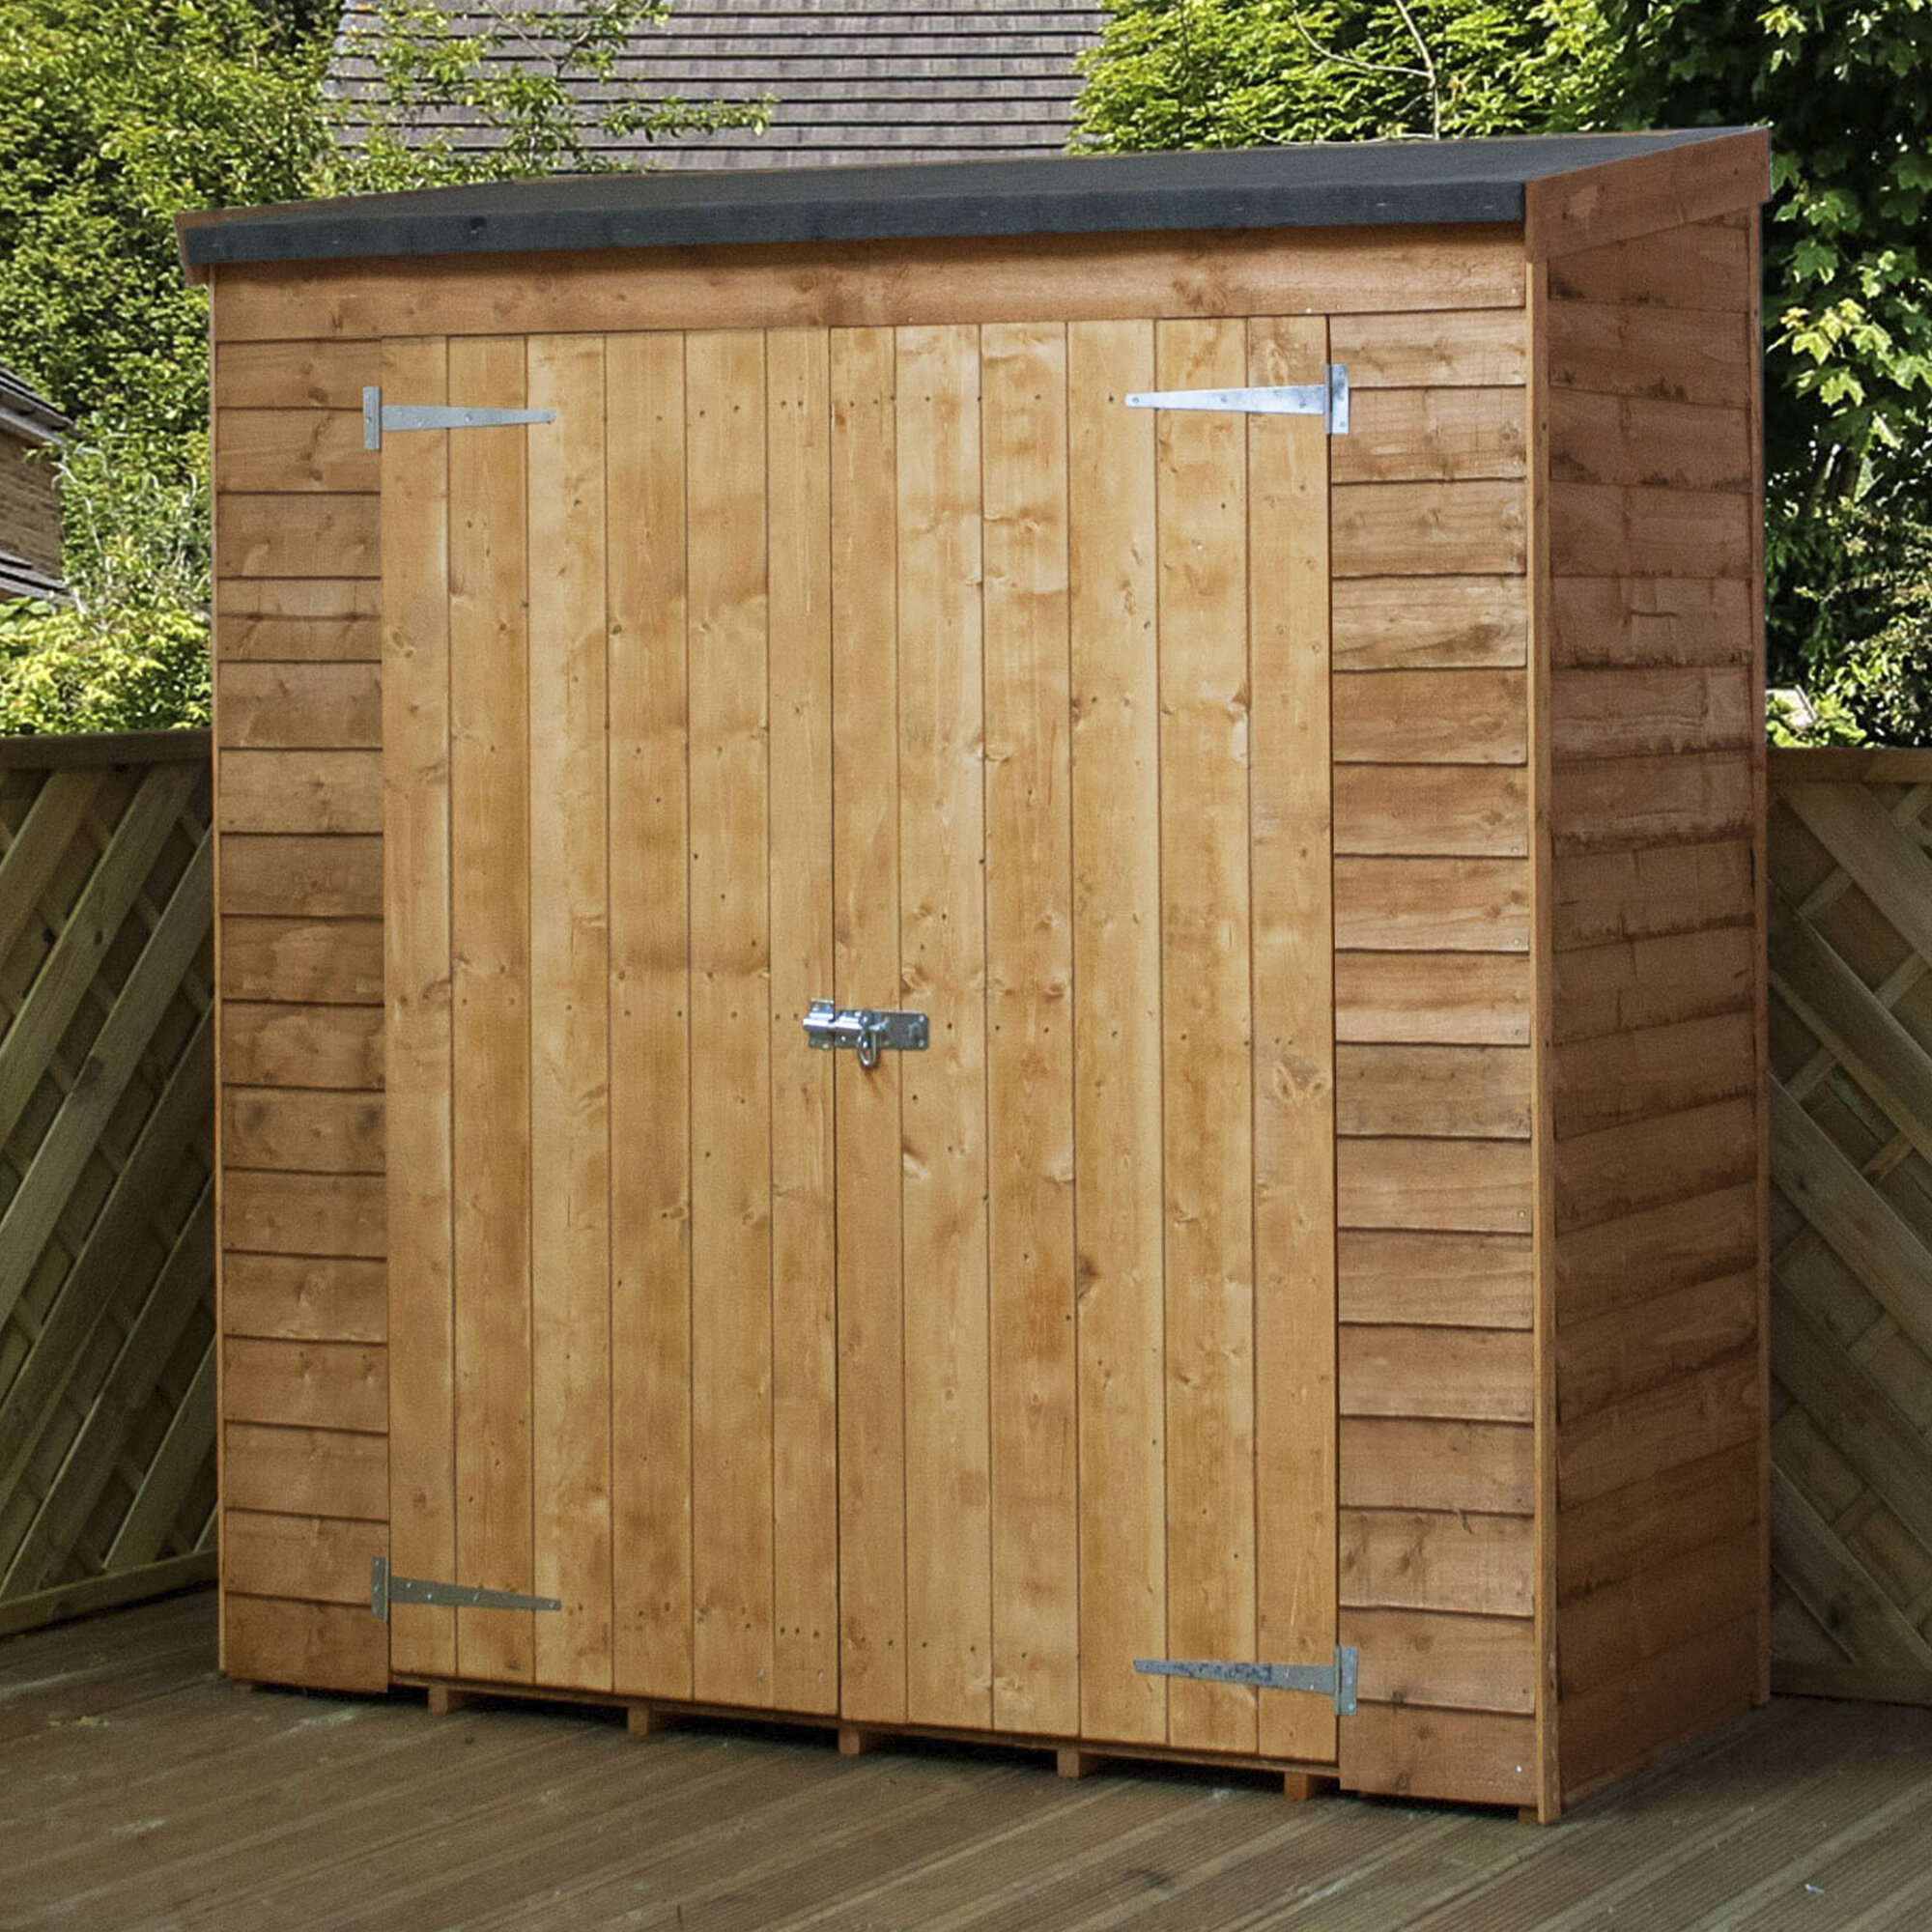 combination buy garden greenhouse with a greenhouses light sheds shed halbc oak